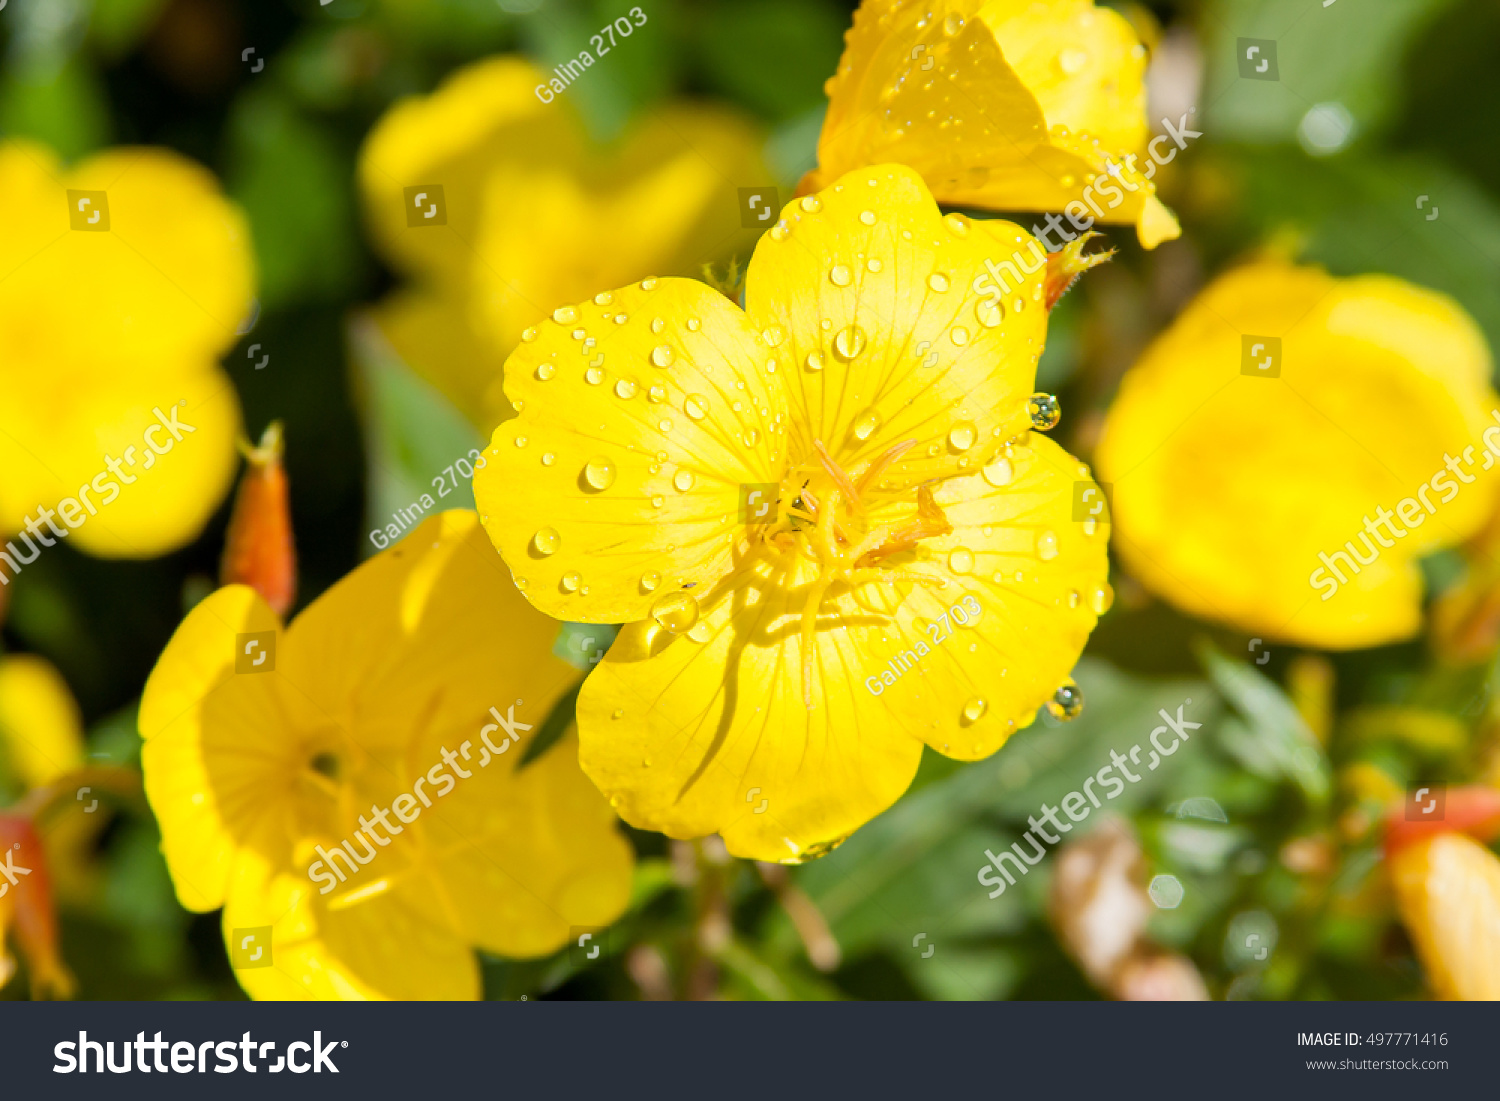 Beautiful yellow flowers garden enotera stock photo edit now beautiful yellow flowers in the garden enotera izmirmasajfo